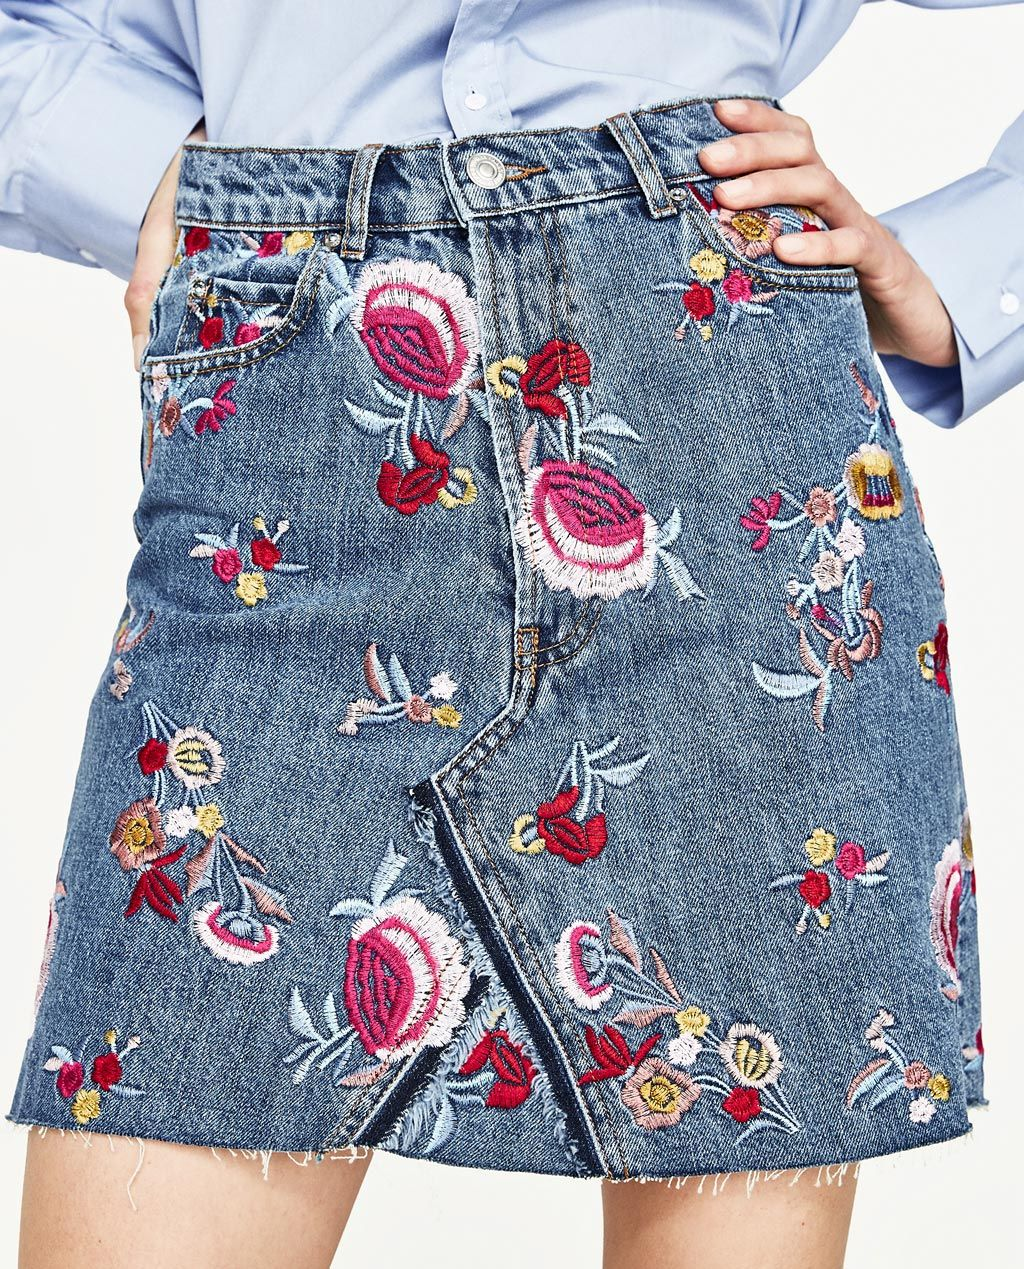 66eff0a0 Image 2 of EMBROIDERED DENIM SKIRT from Zara | DIY Inspo in 2019 ...